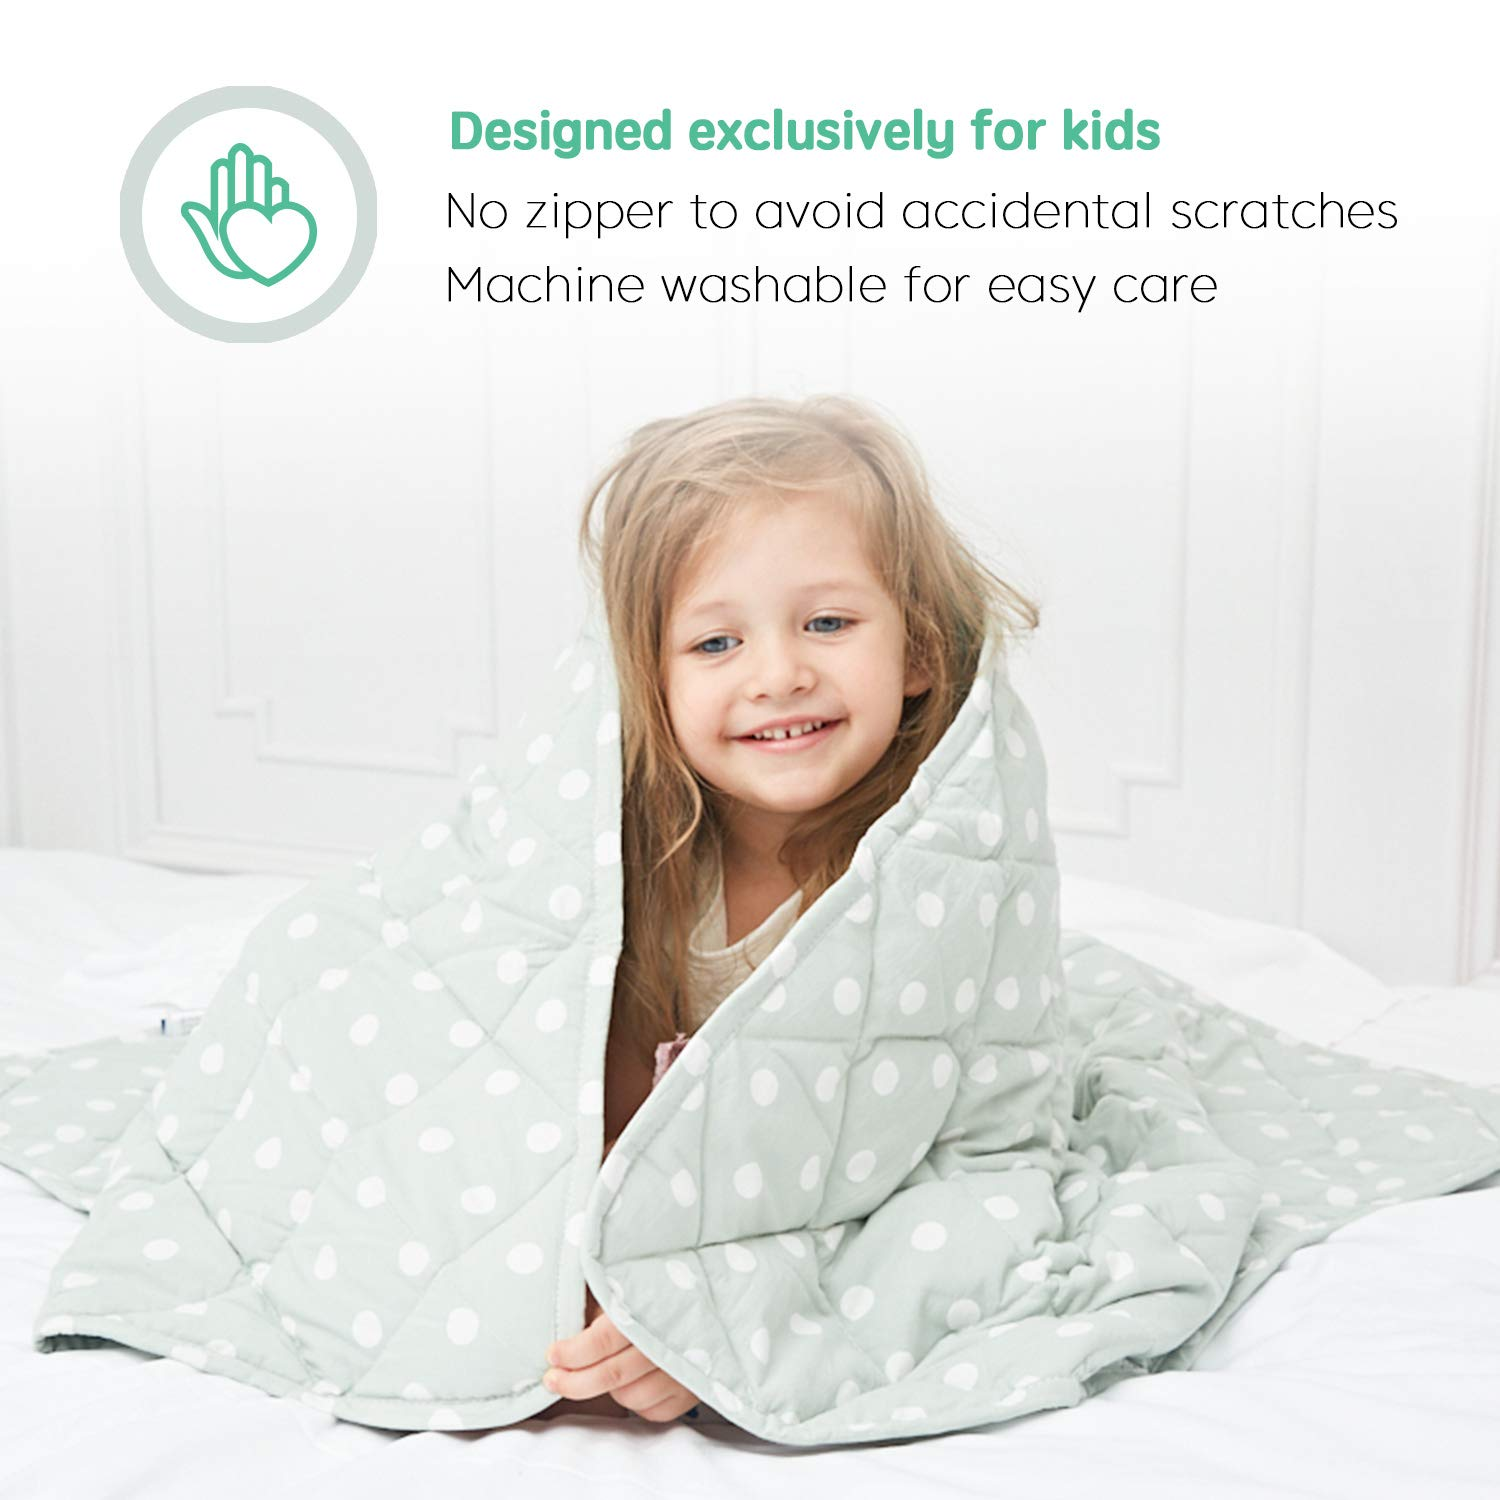 Machine Washable for Easy Care Sky Blue Toddler Heavy Blanket with Glass Beads for Improved Sleep 5 lbs, 36x48 ULTIFIT Weighted Blanket for Kids 100/% Breathable Natural Cotton